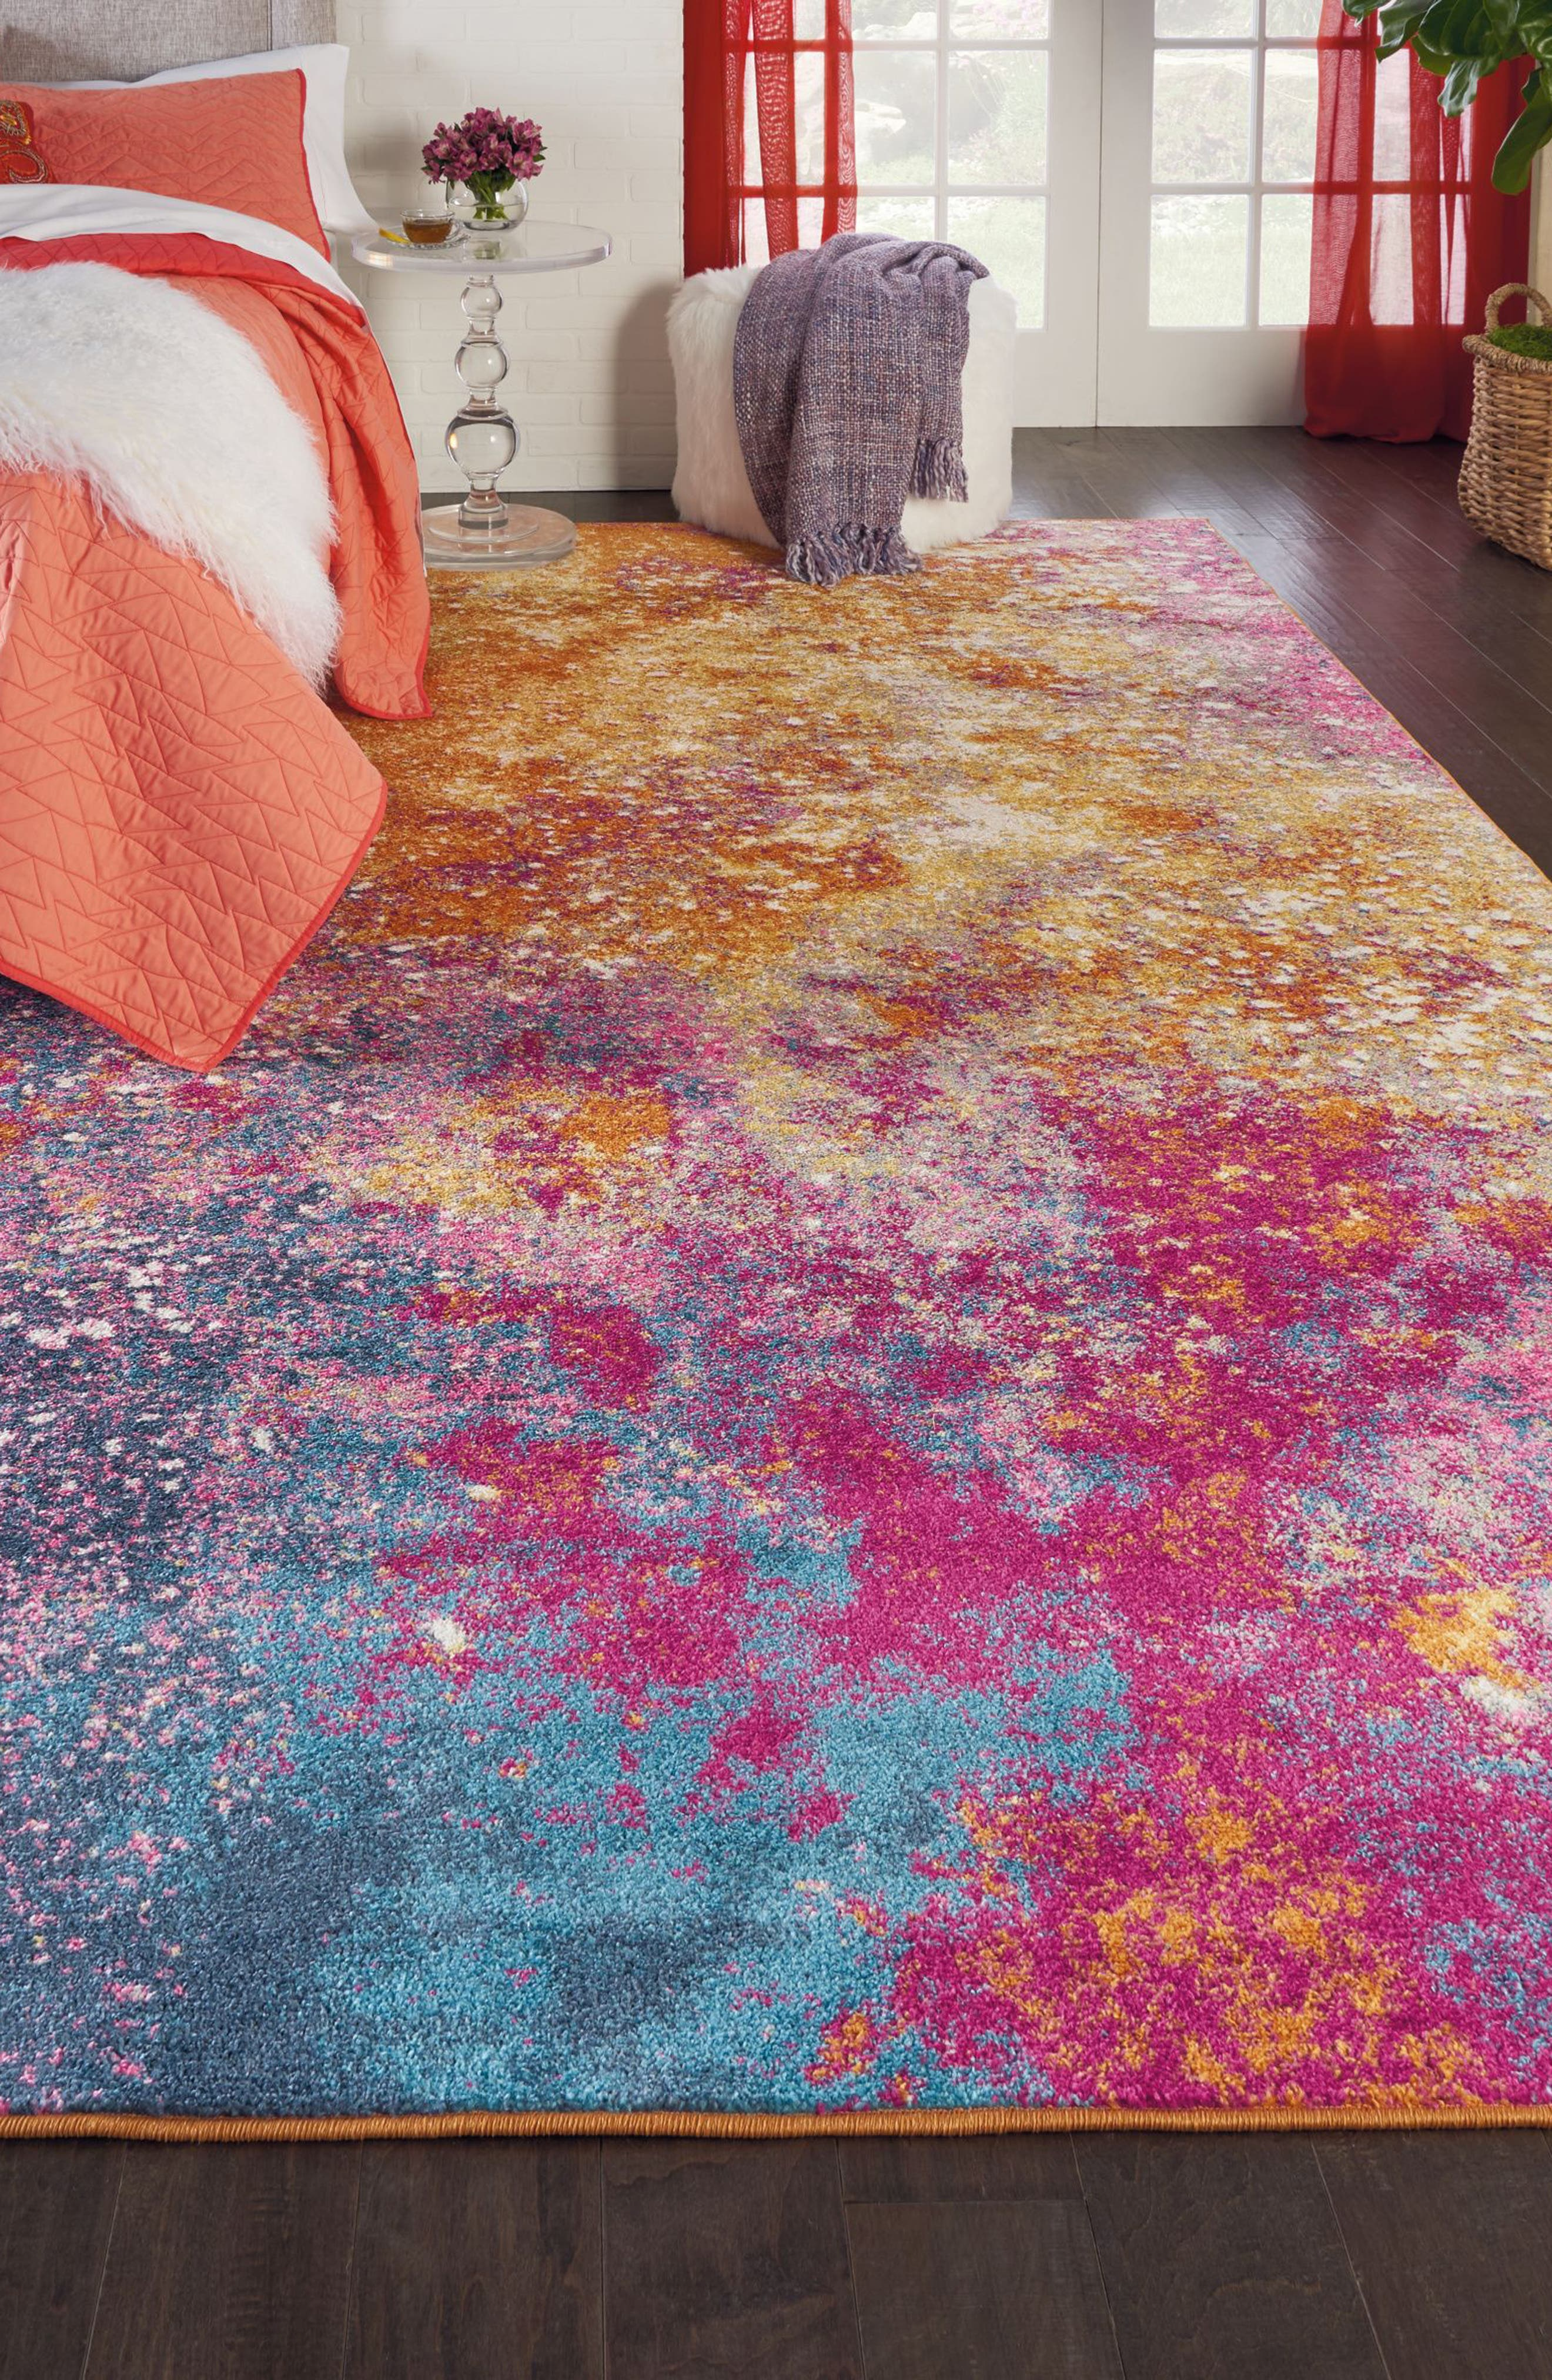 Sunburst Rug,                             Alternate thumbnail 9, color,                             800